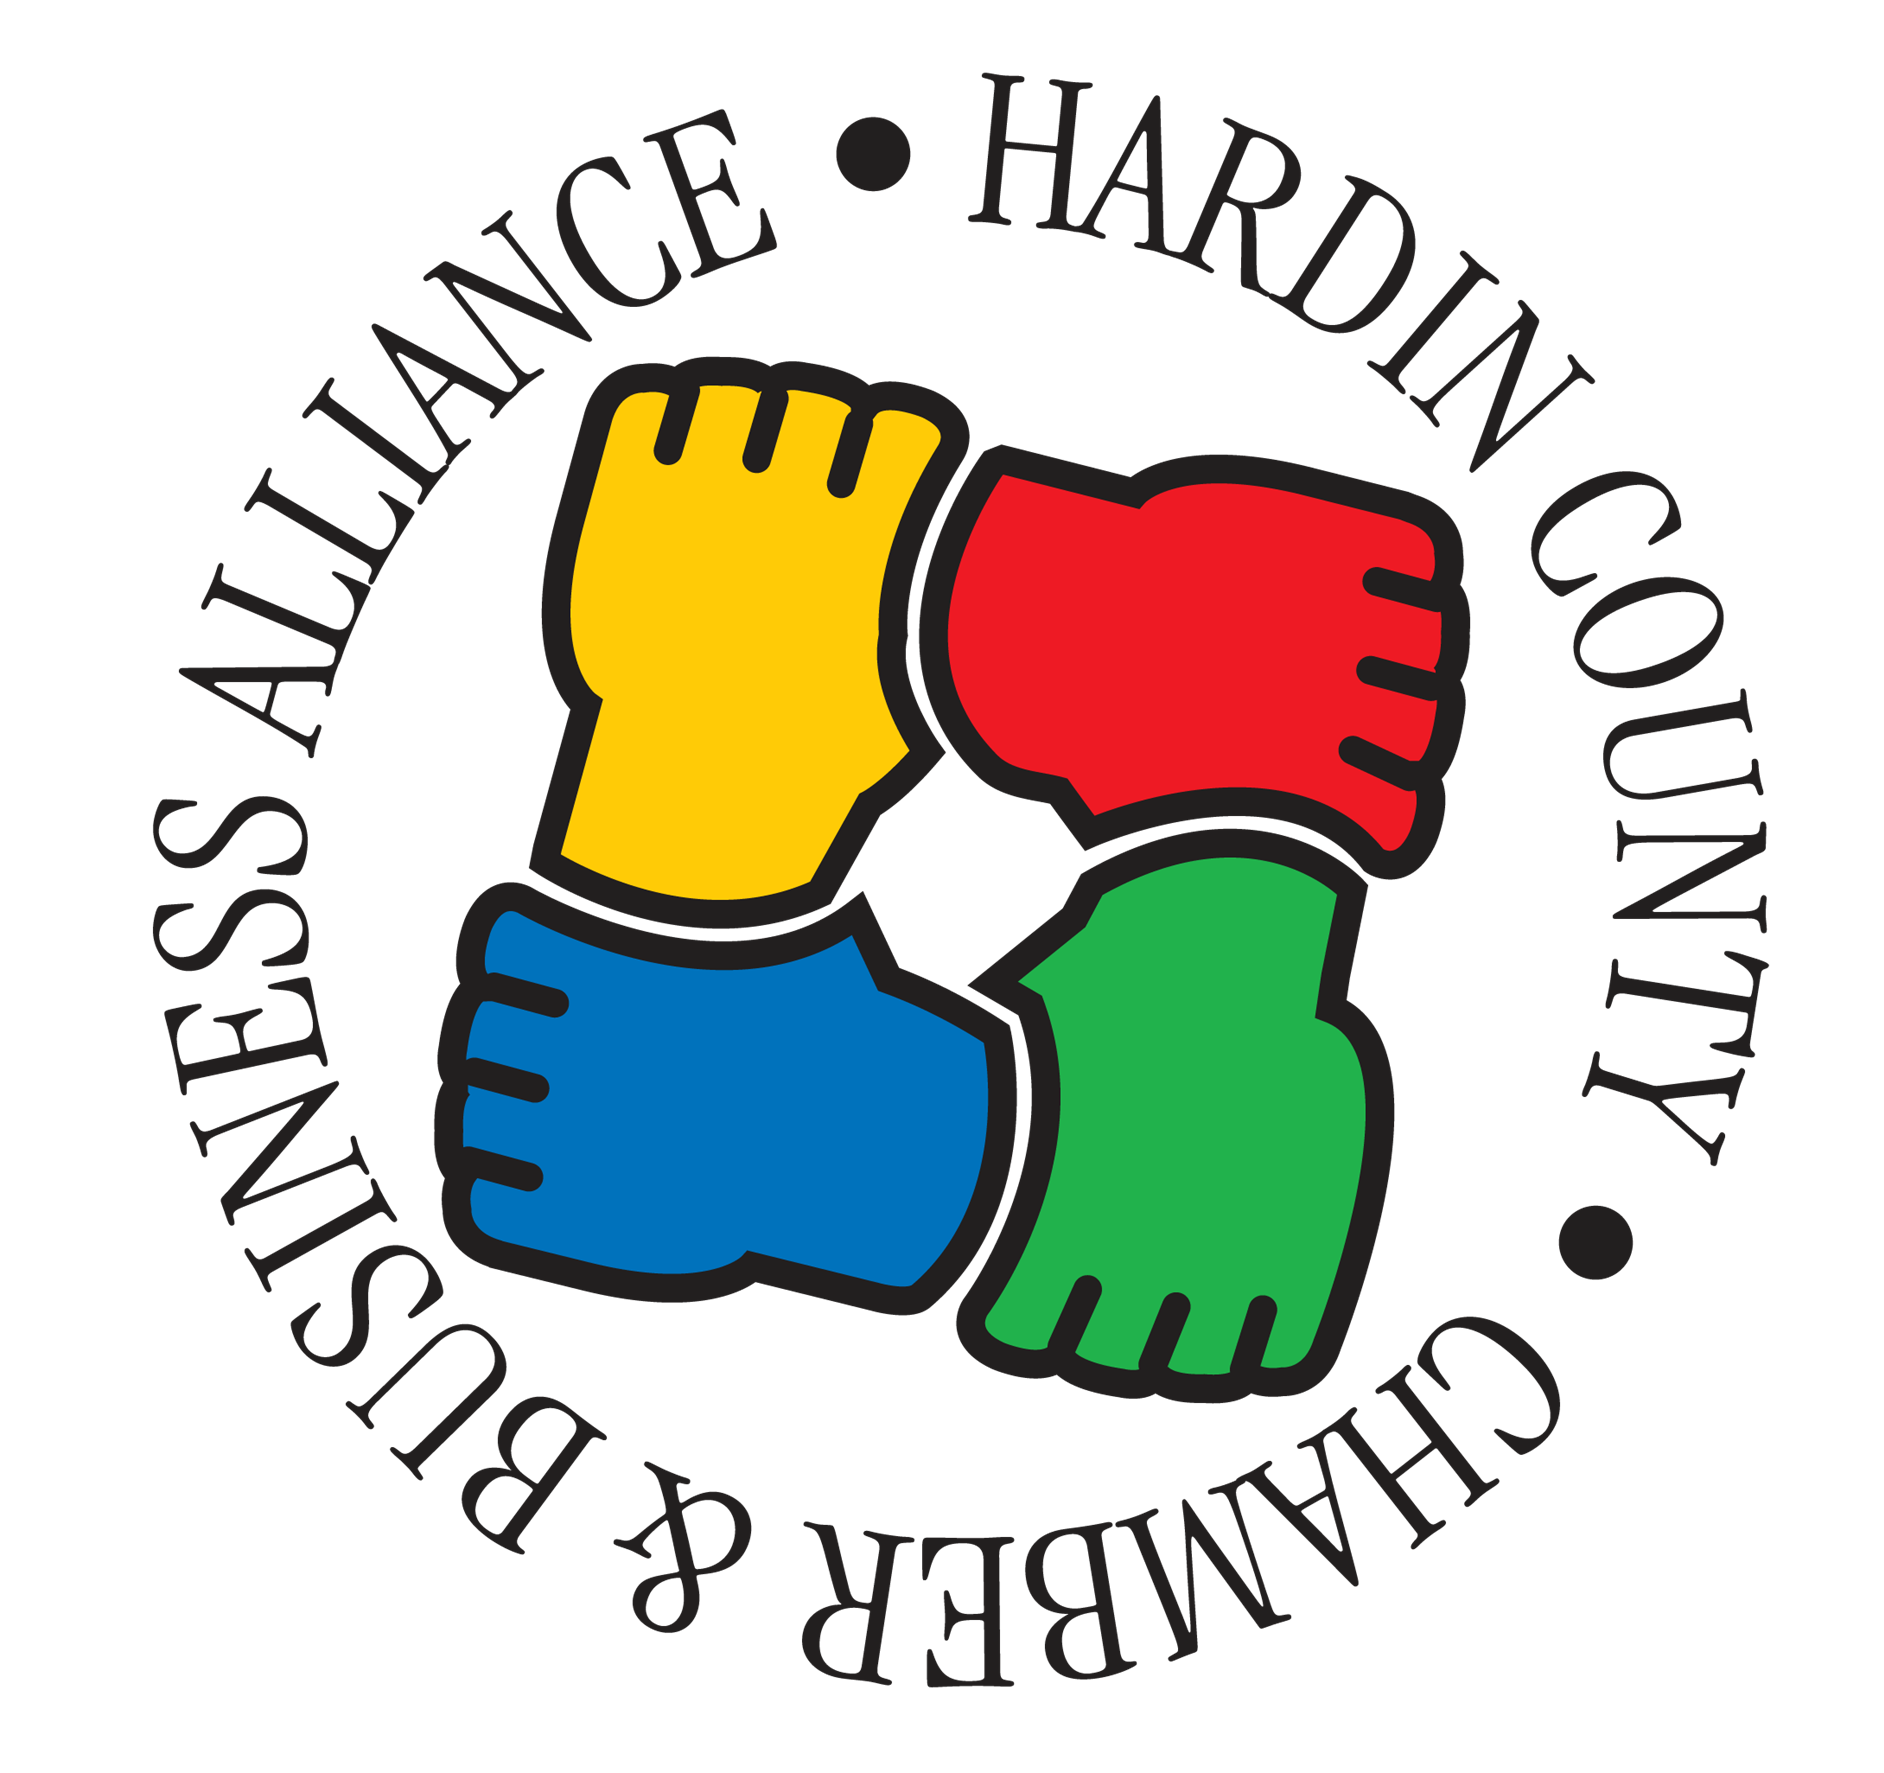 Hardin County Chamber & Business Alliance